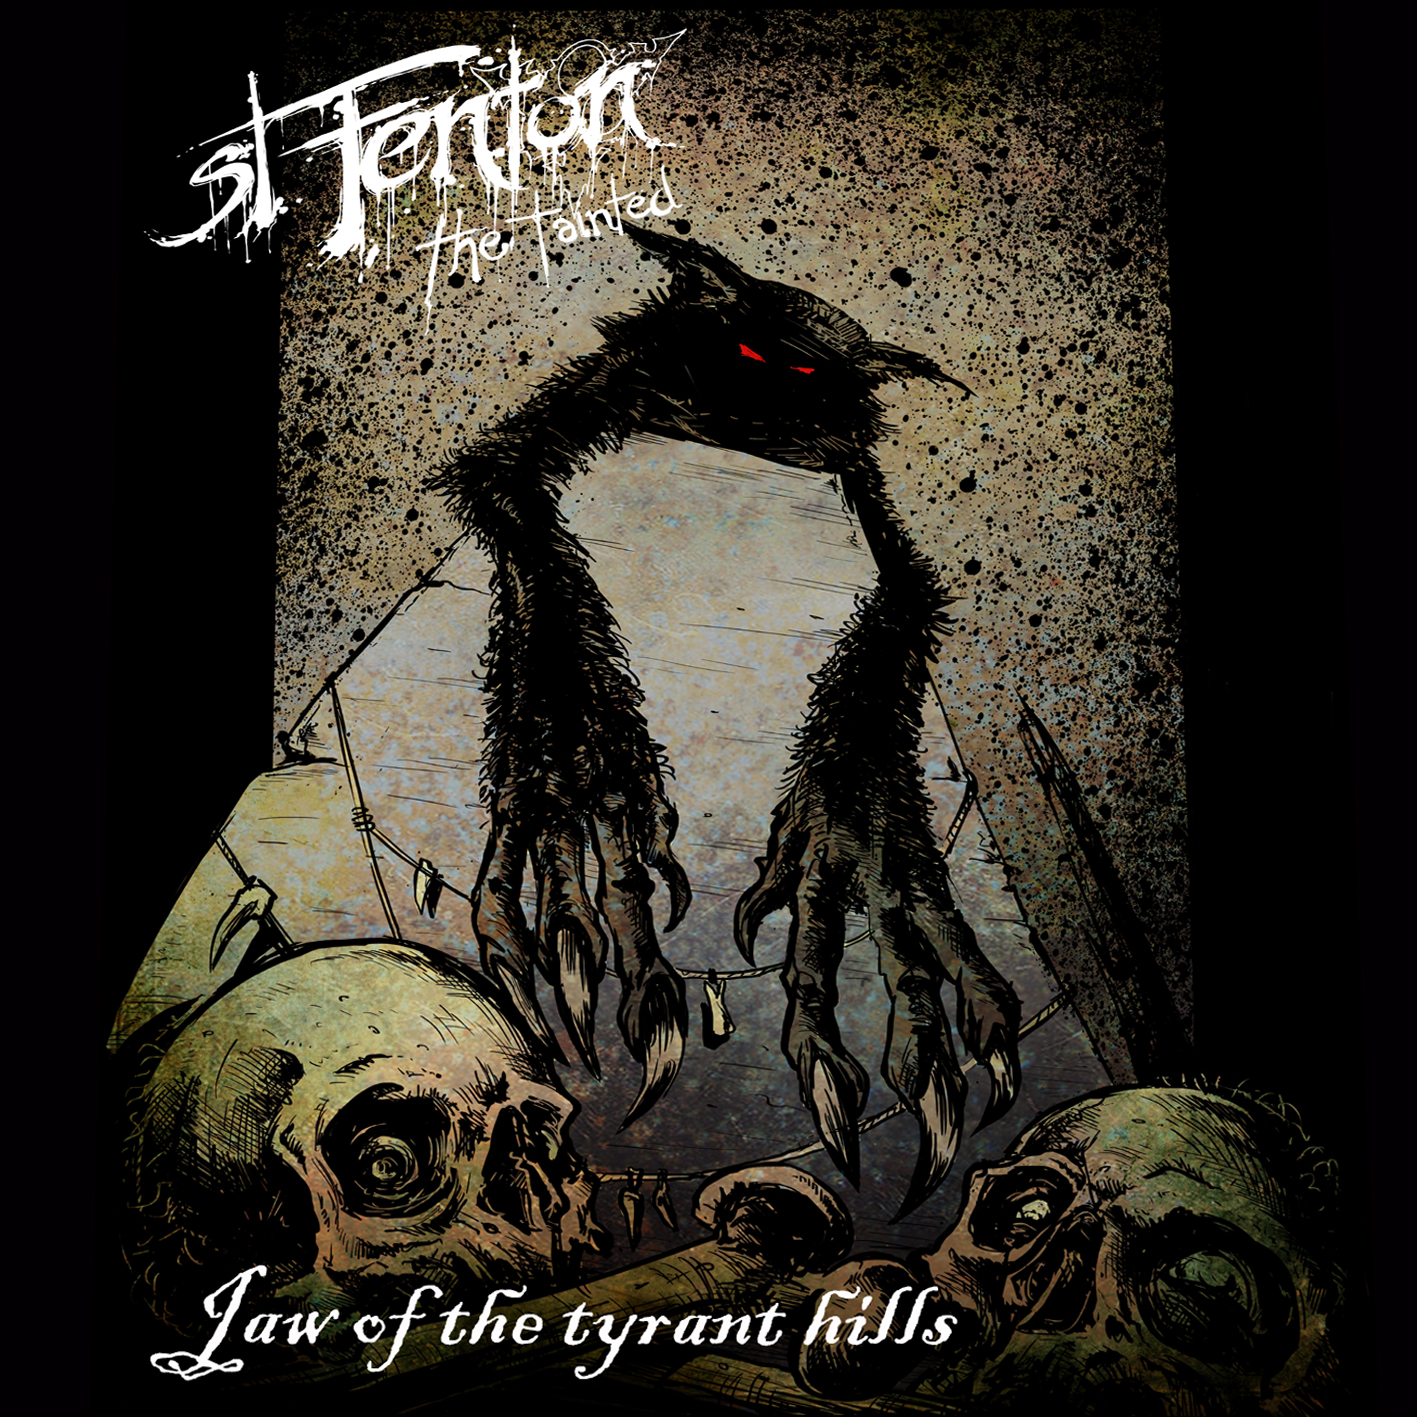 Jaw of the Tyrant Hills track   listing:   1) You Stepped On My Grave (intro) 2) Kill What You Love 3) God Sent Rain (You Sent Blood and Piss) 4) Ghost of the Stillborn Summer 5) Do Your Devils Know My Name 6) Death Wanders Home